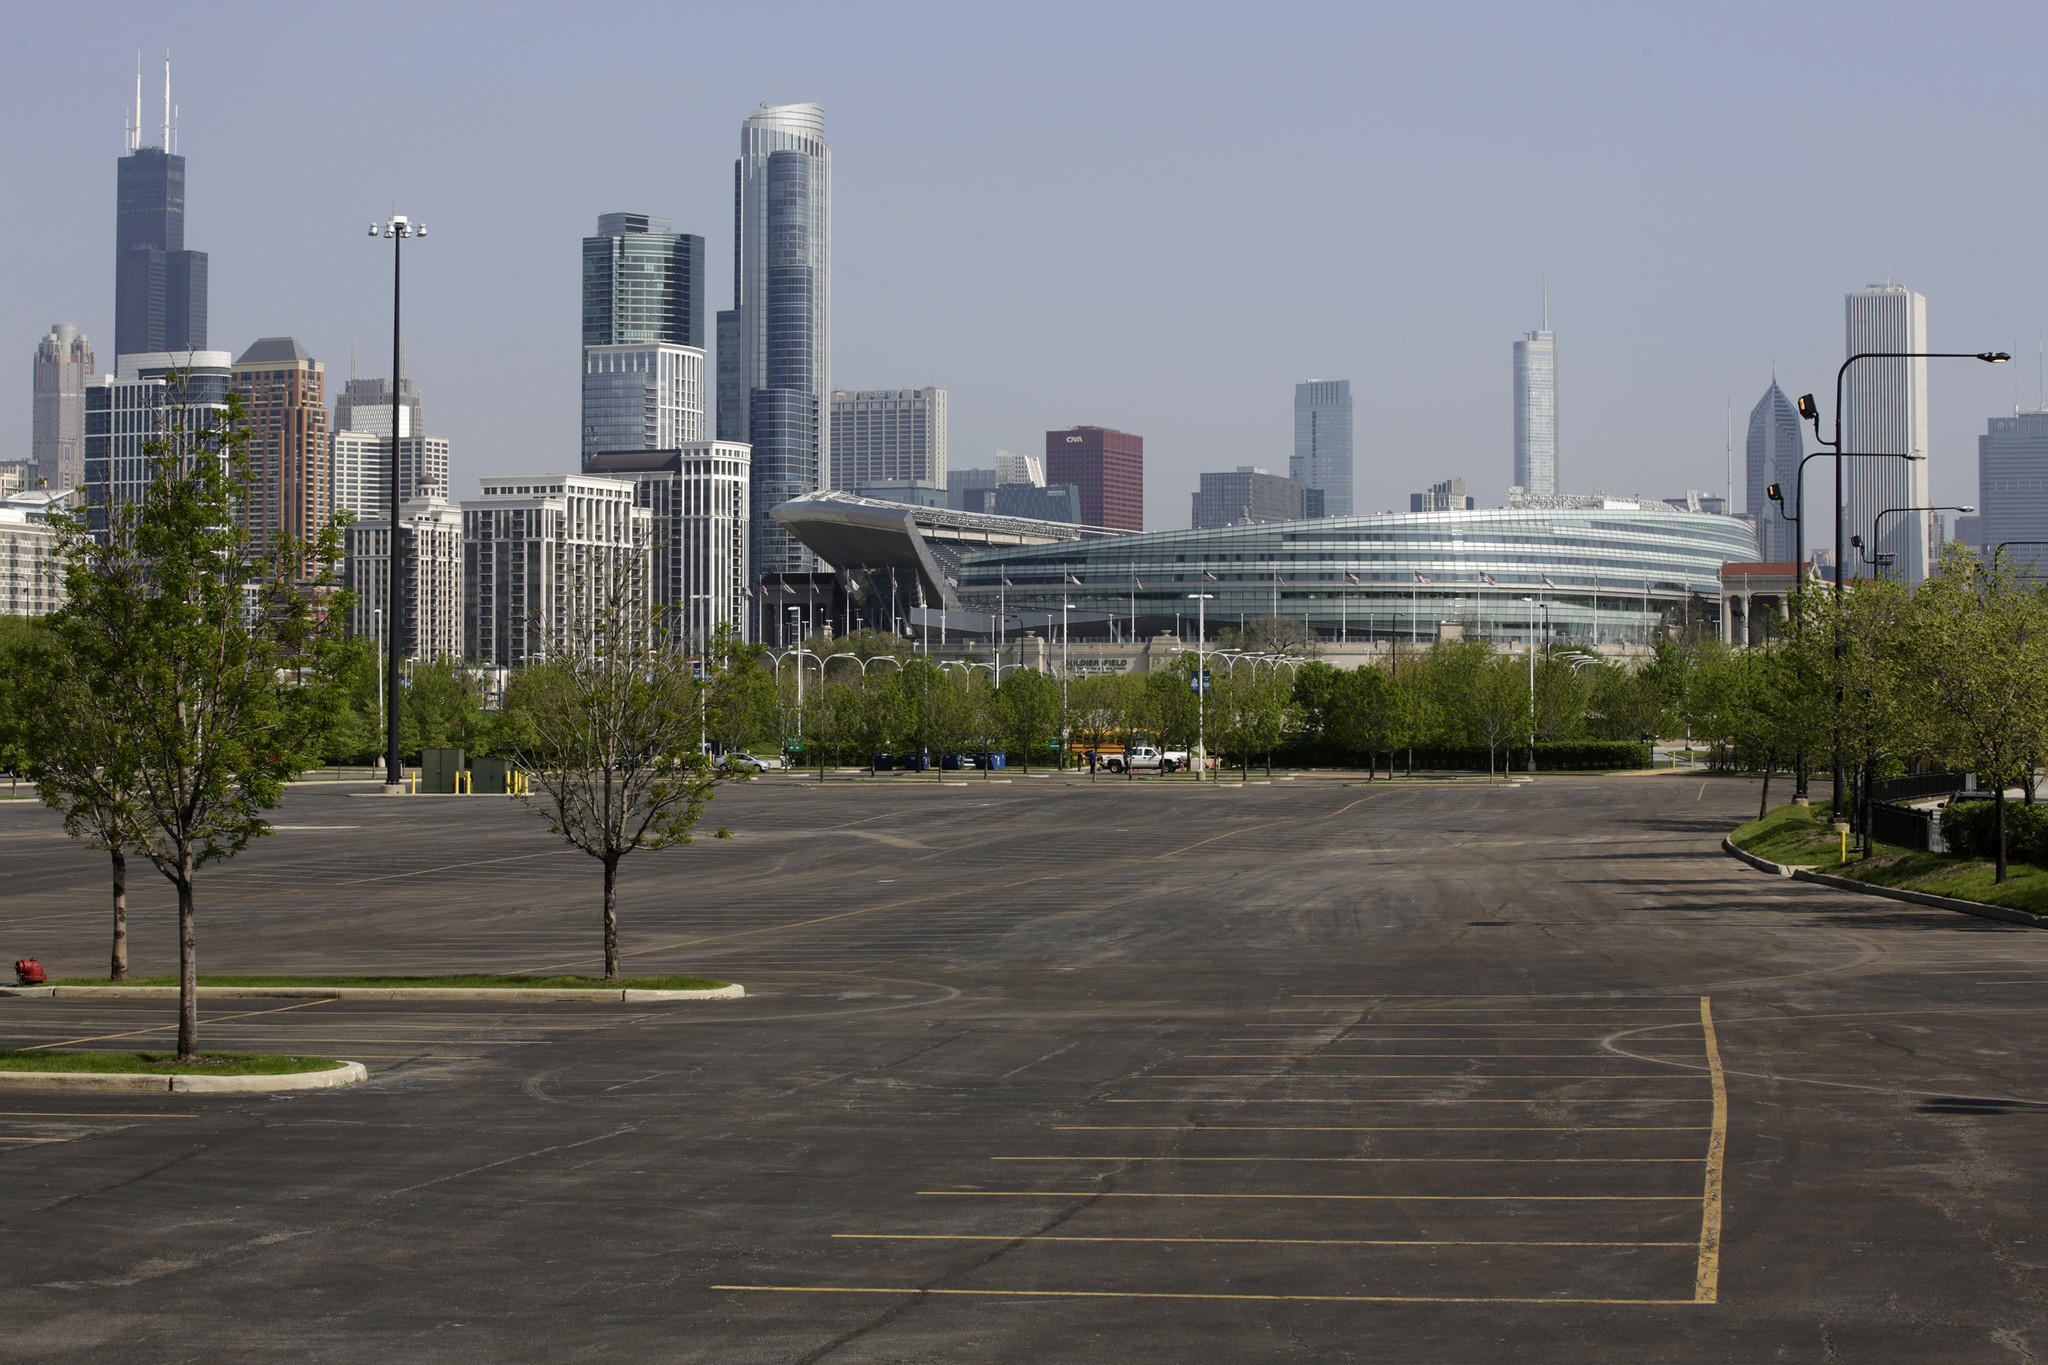 The parking lots between McCormick Place and Soldier Field are the proposed Chicago museum site for George Lucas' collection of art and movie memorabilia.